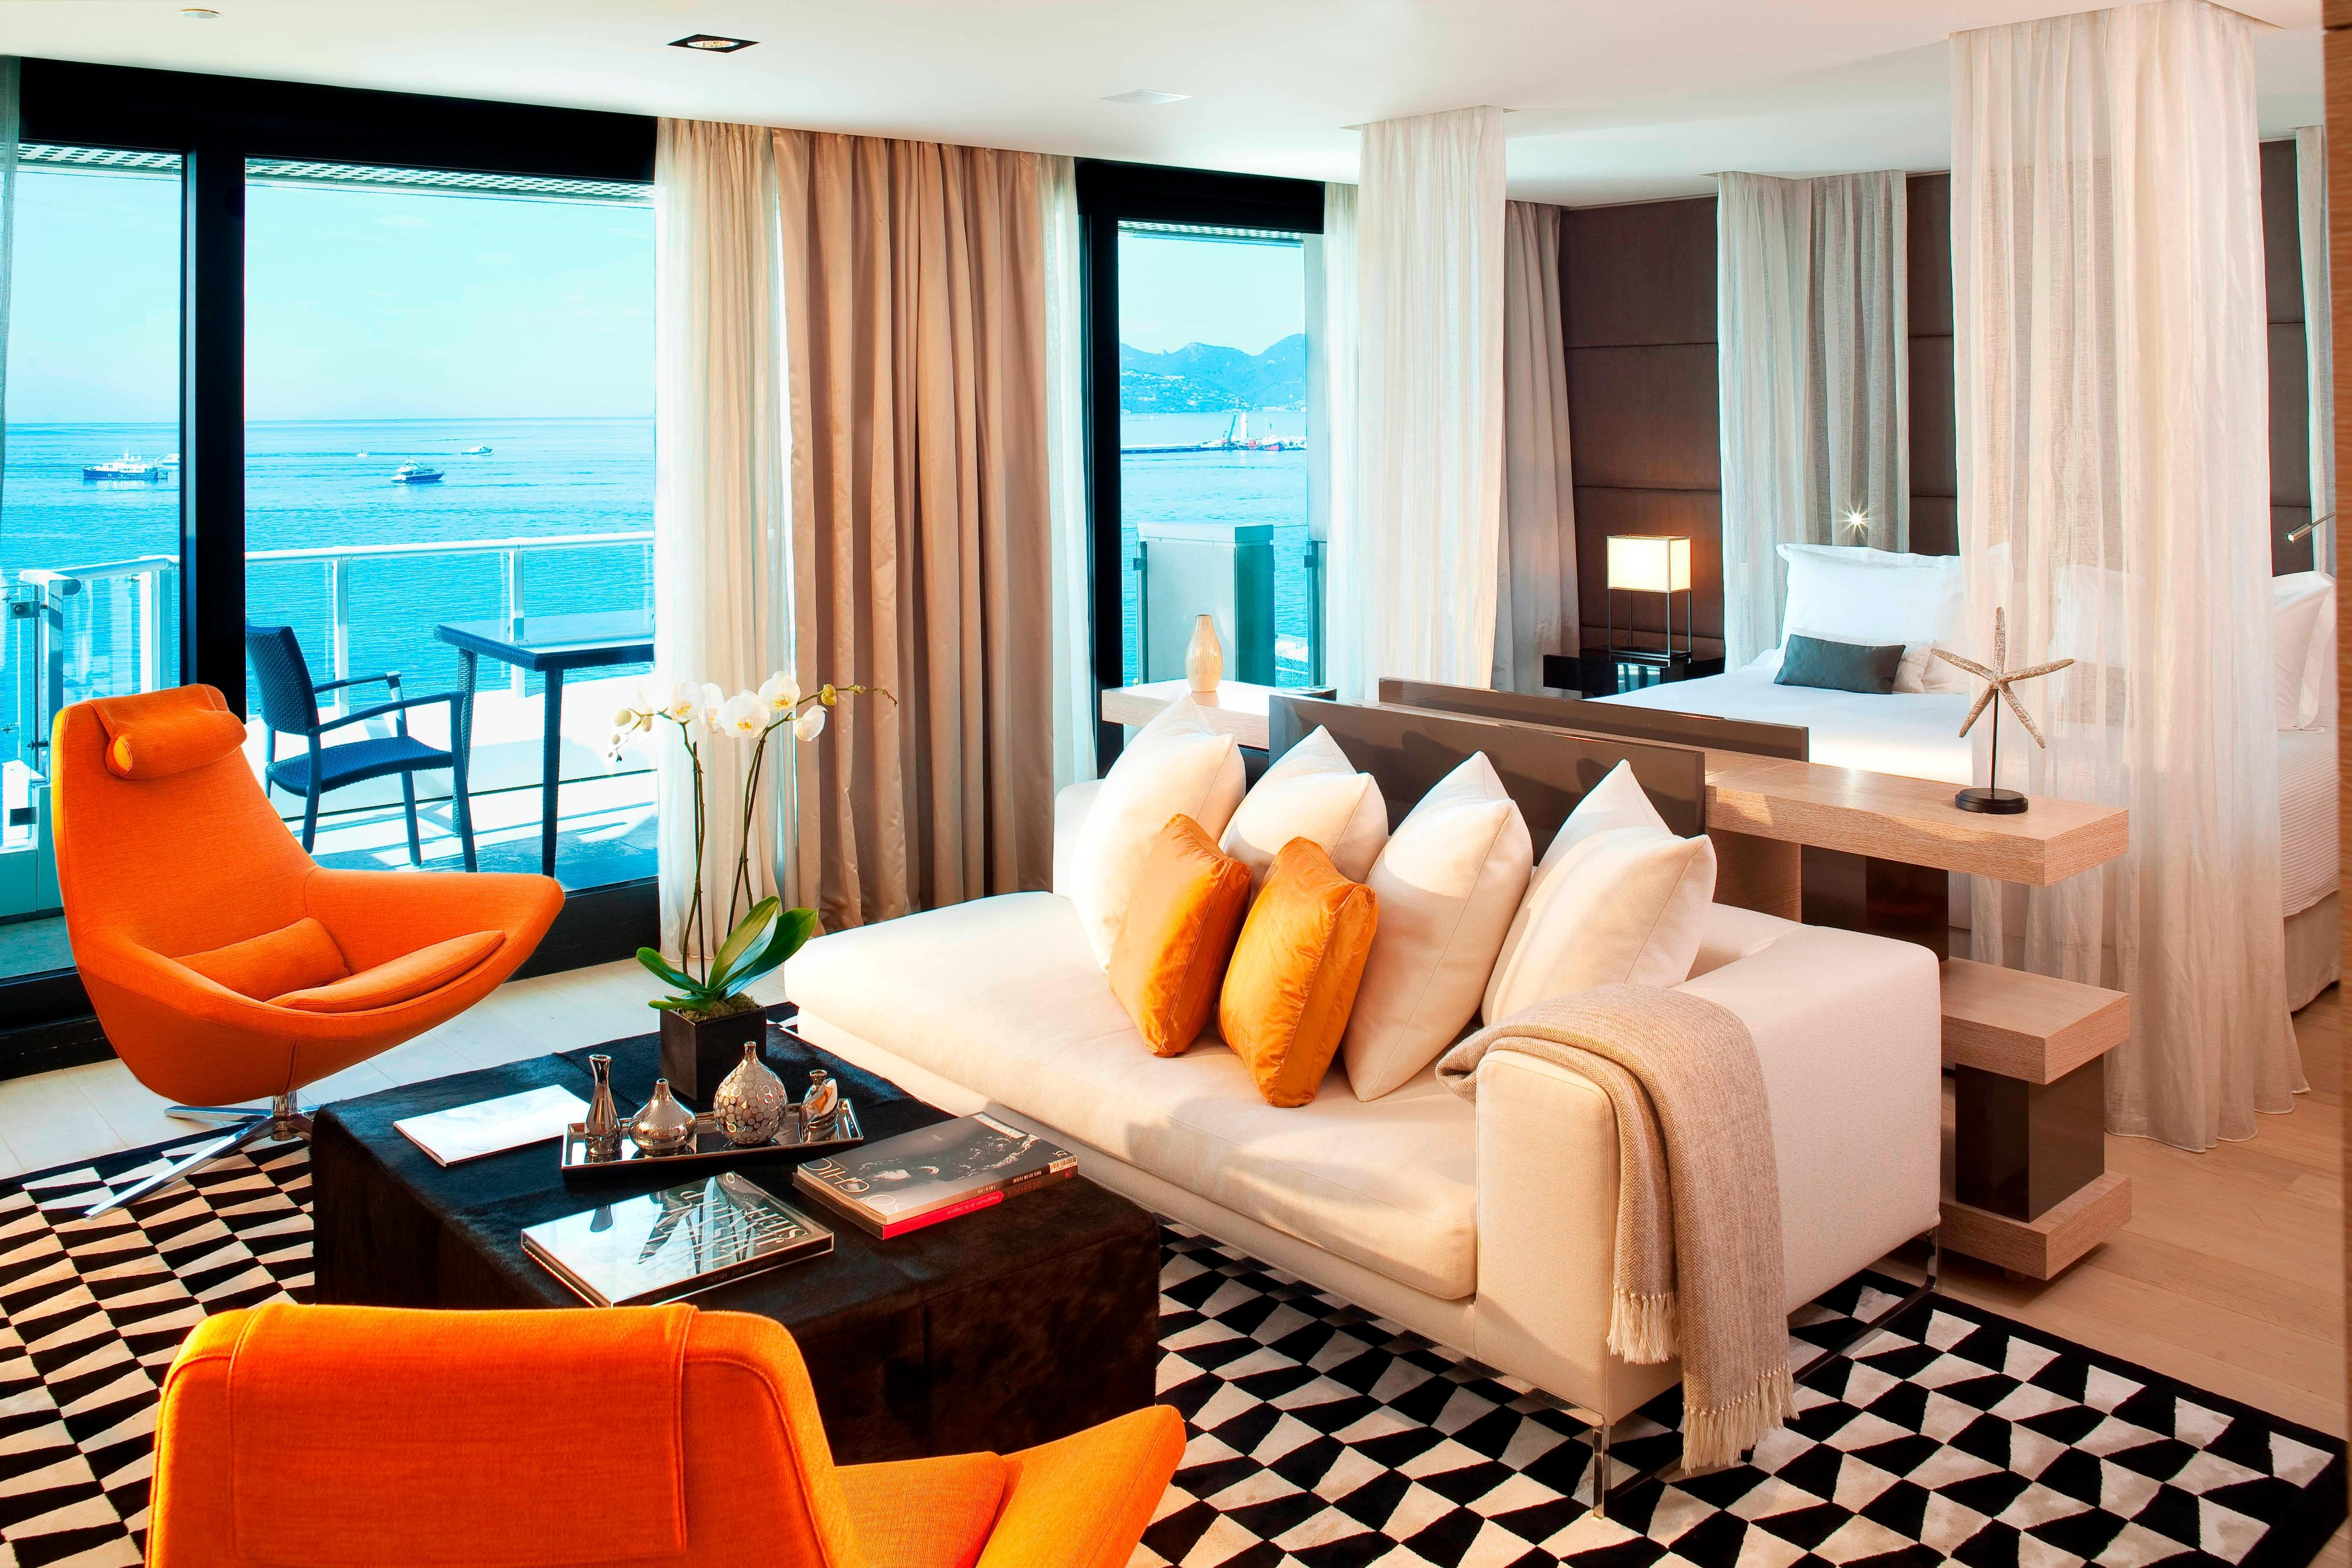 Presidential suite in Cannes hotel